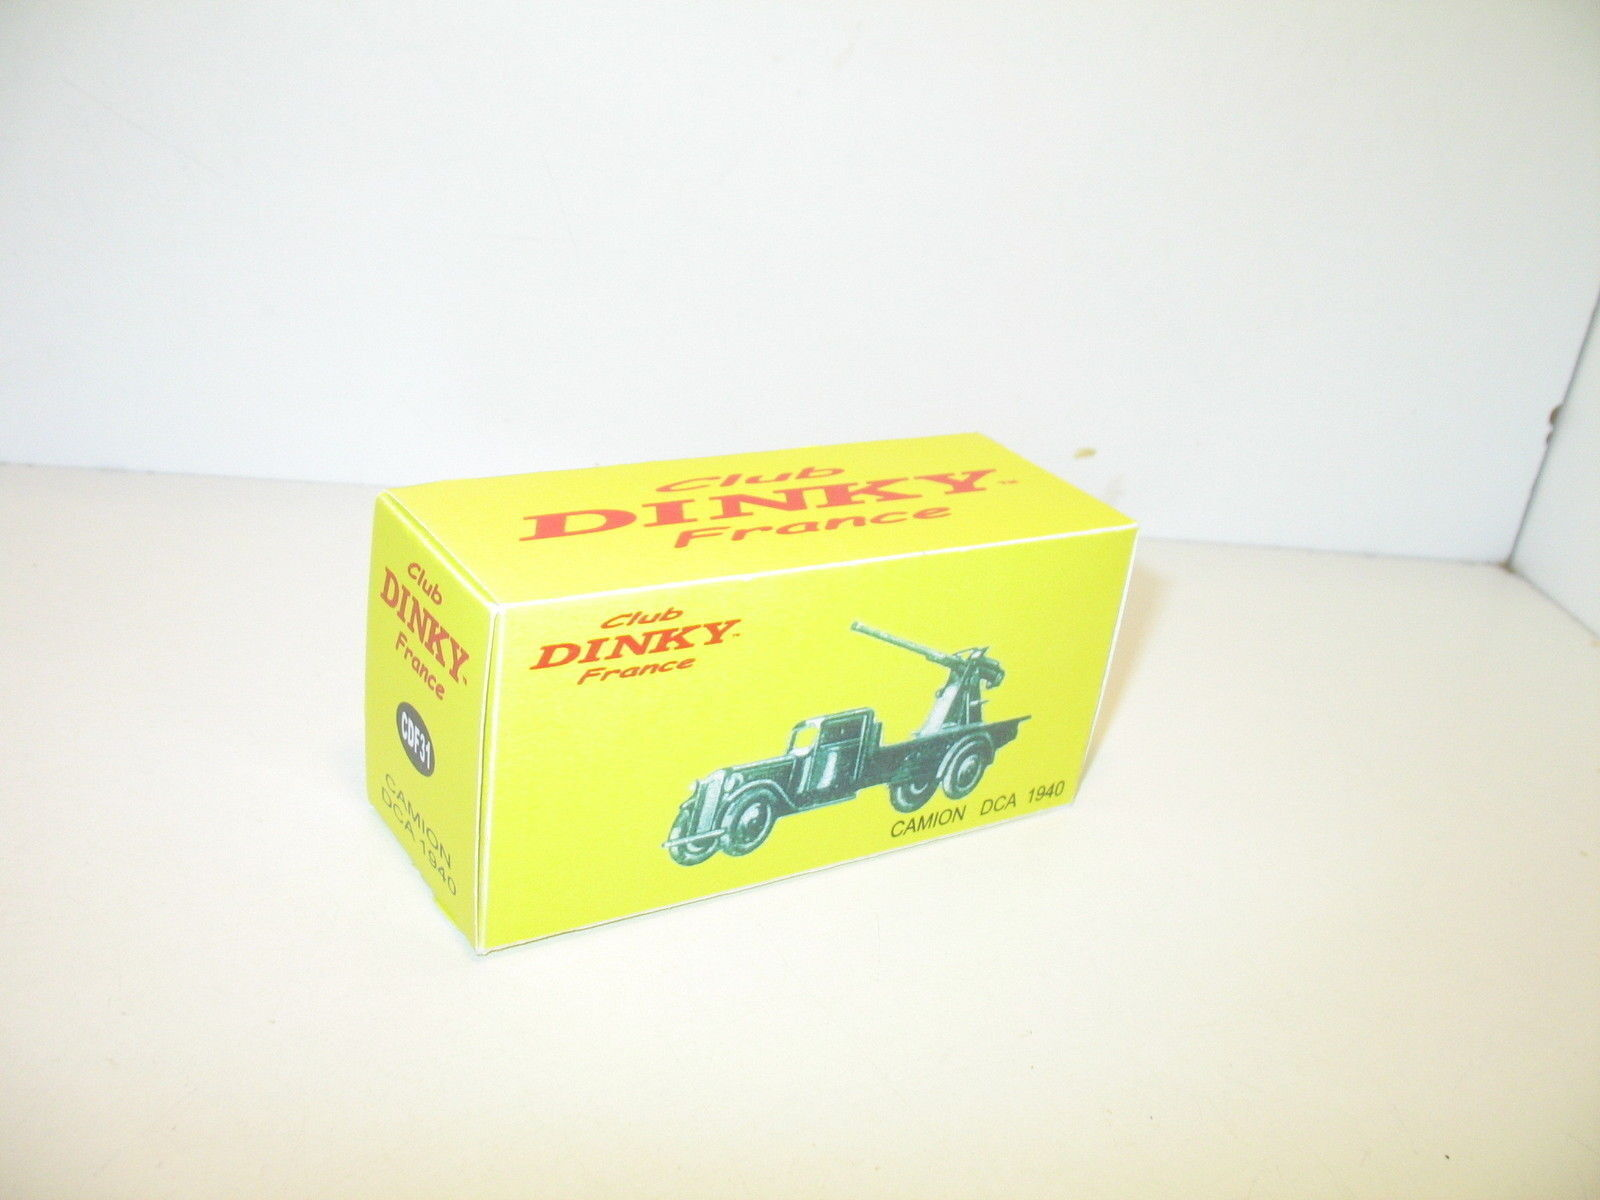 N23, boite camion DCA 1940  repro DINKY-france, militaire